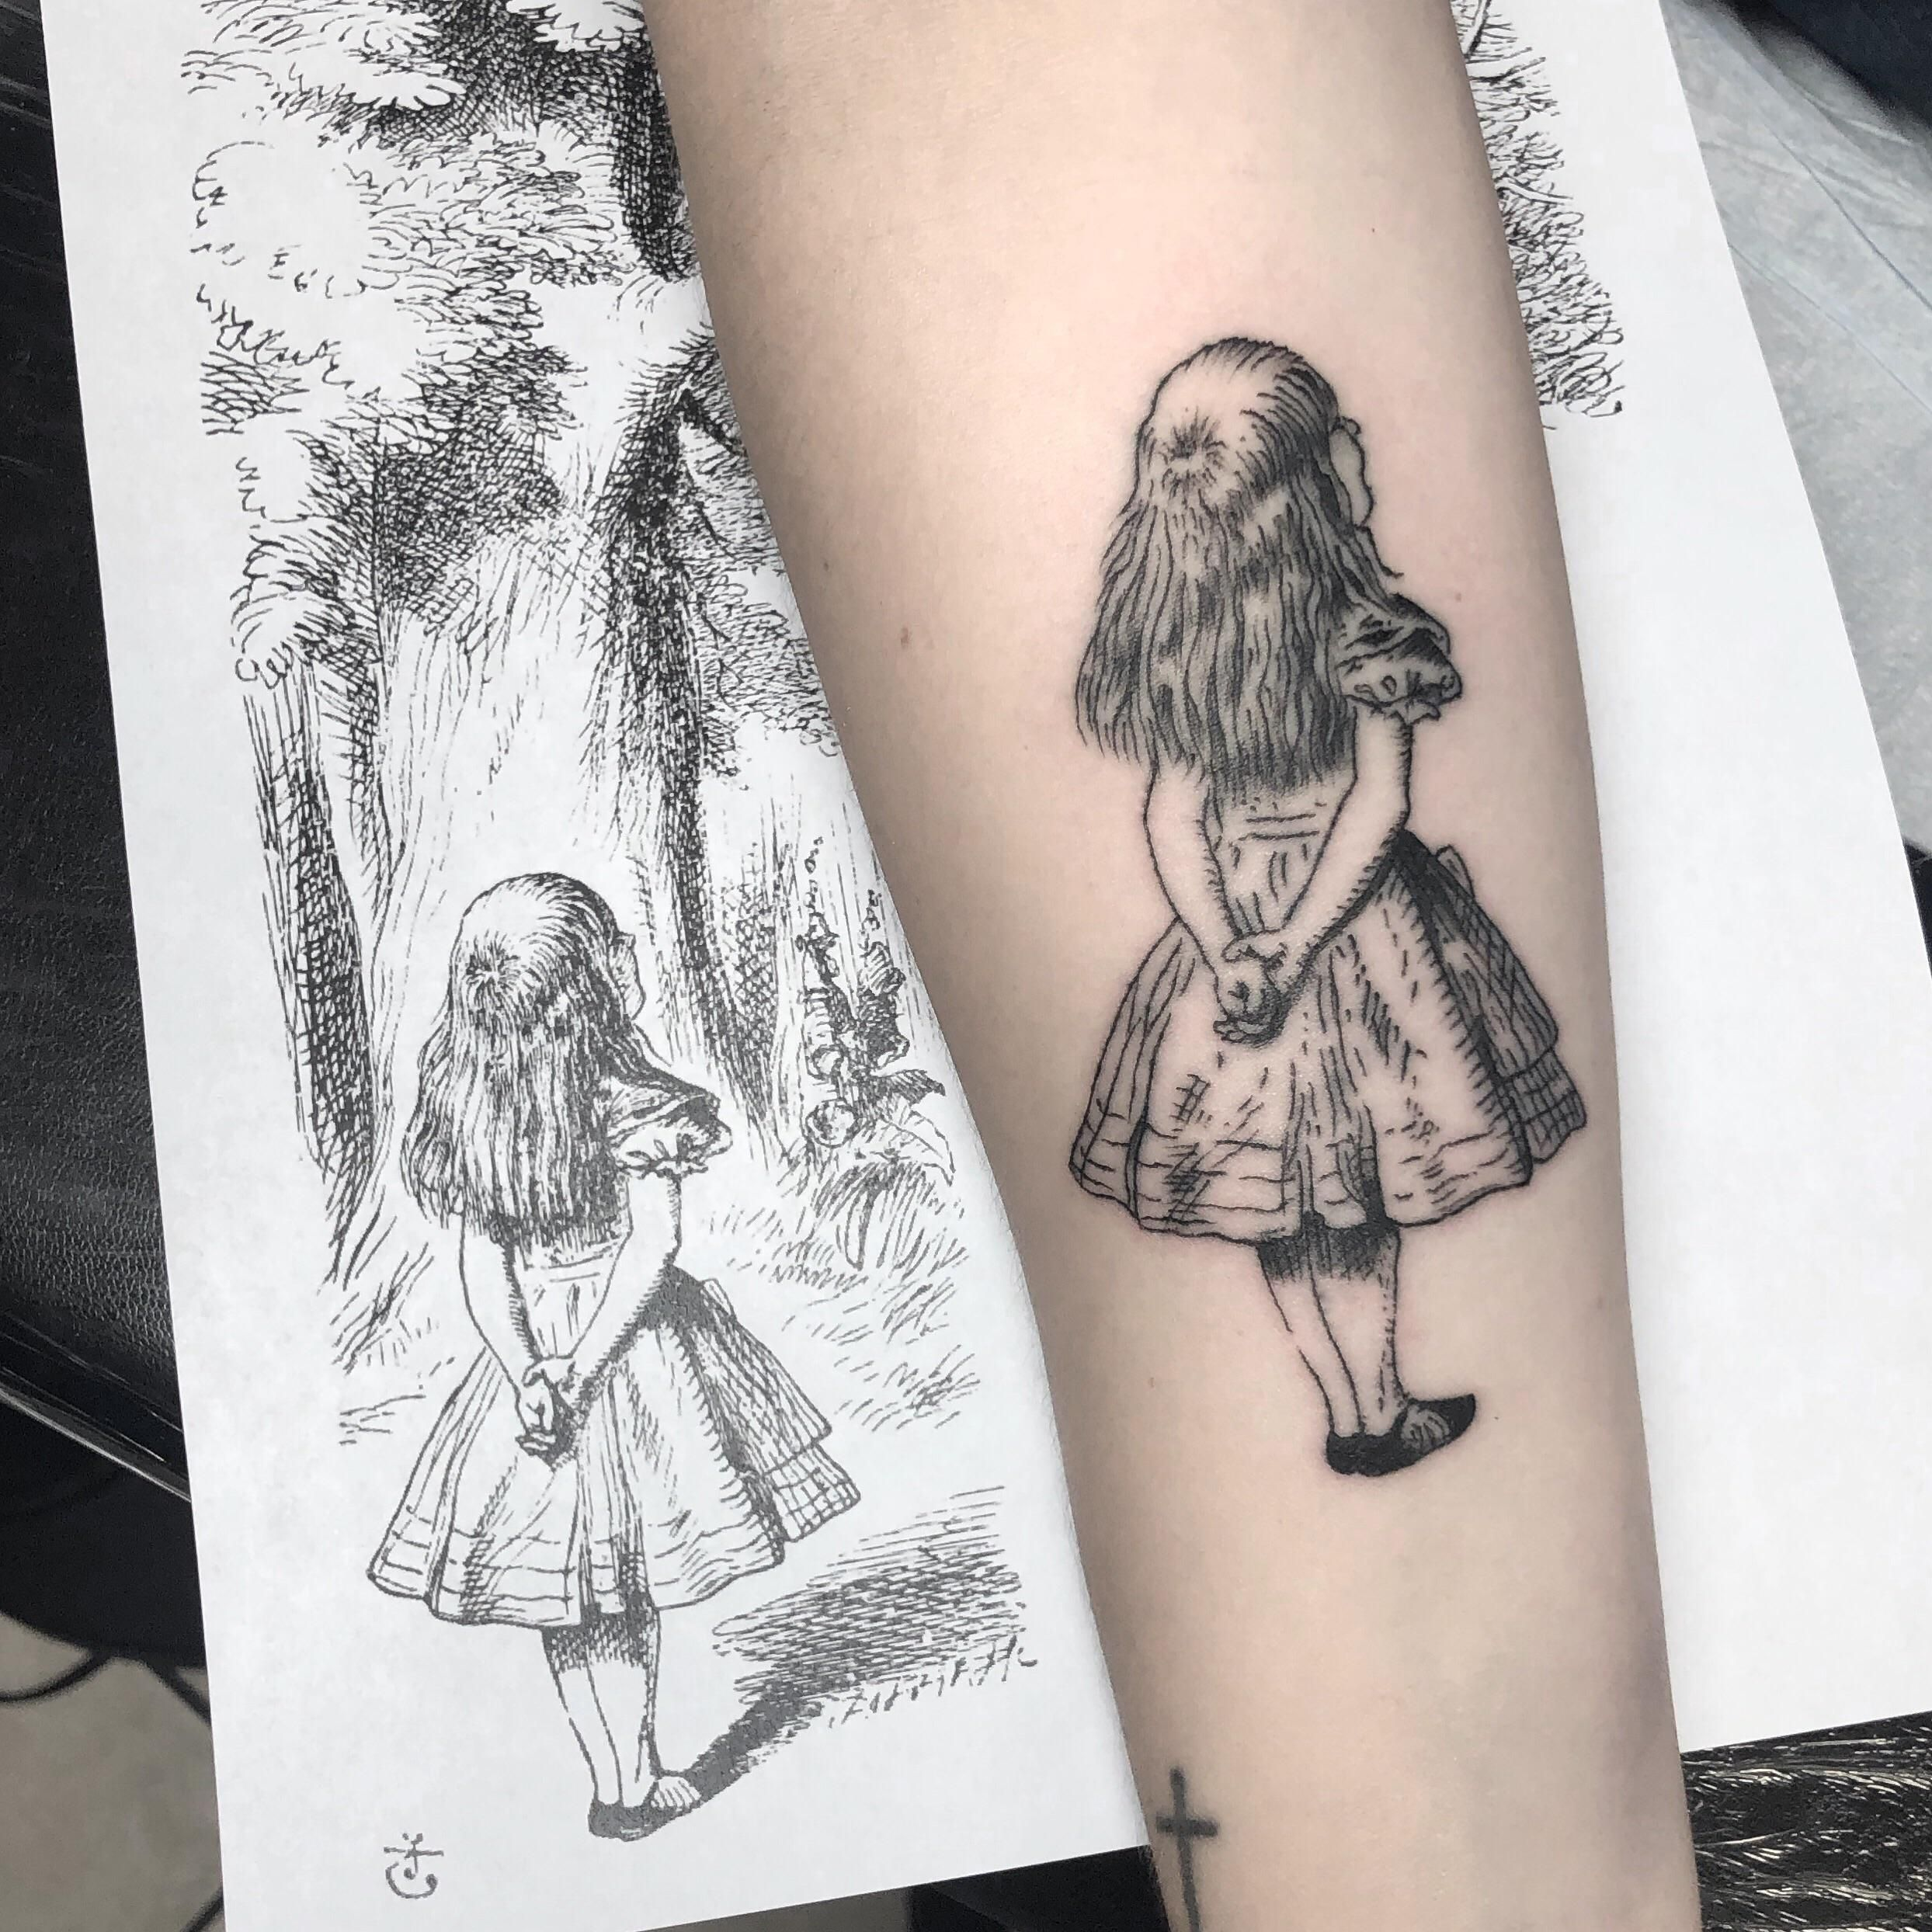 Had A Wonderful Time Replicating This Illustration By John Tenniel From Alices Adventures In Wonderland In 2020 Wonderland Tattoo Alice And Wonderland Tattoos Tattoos